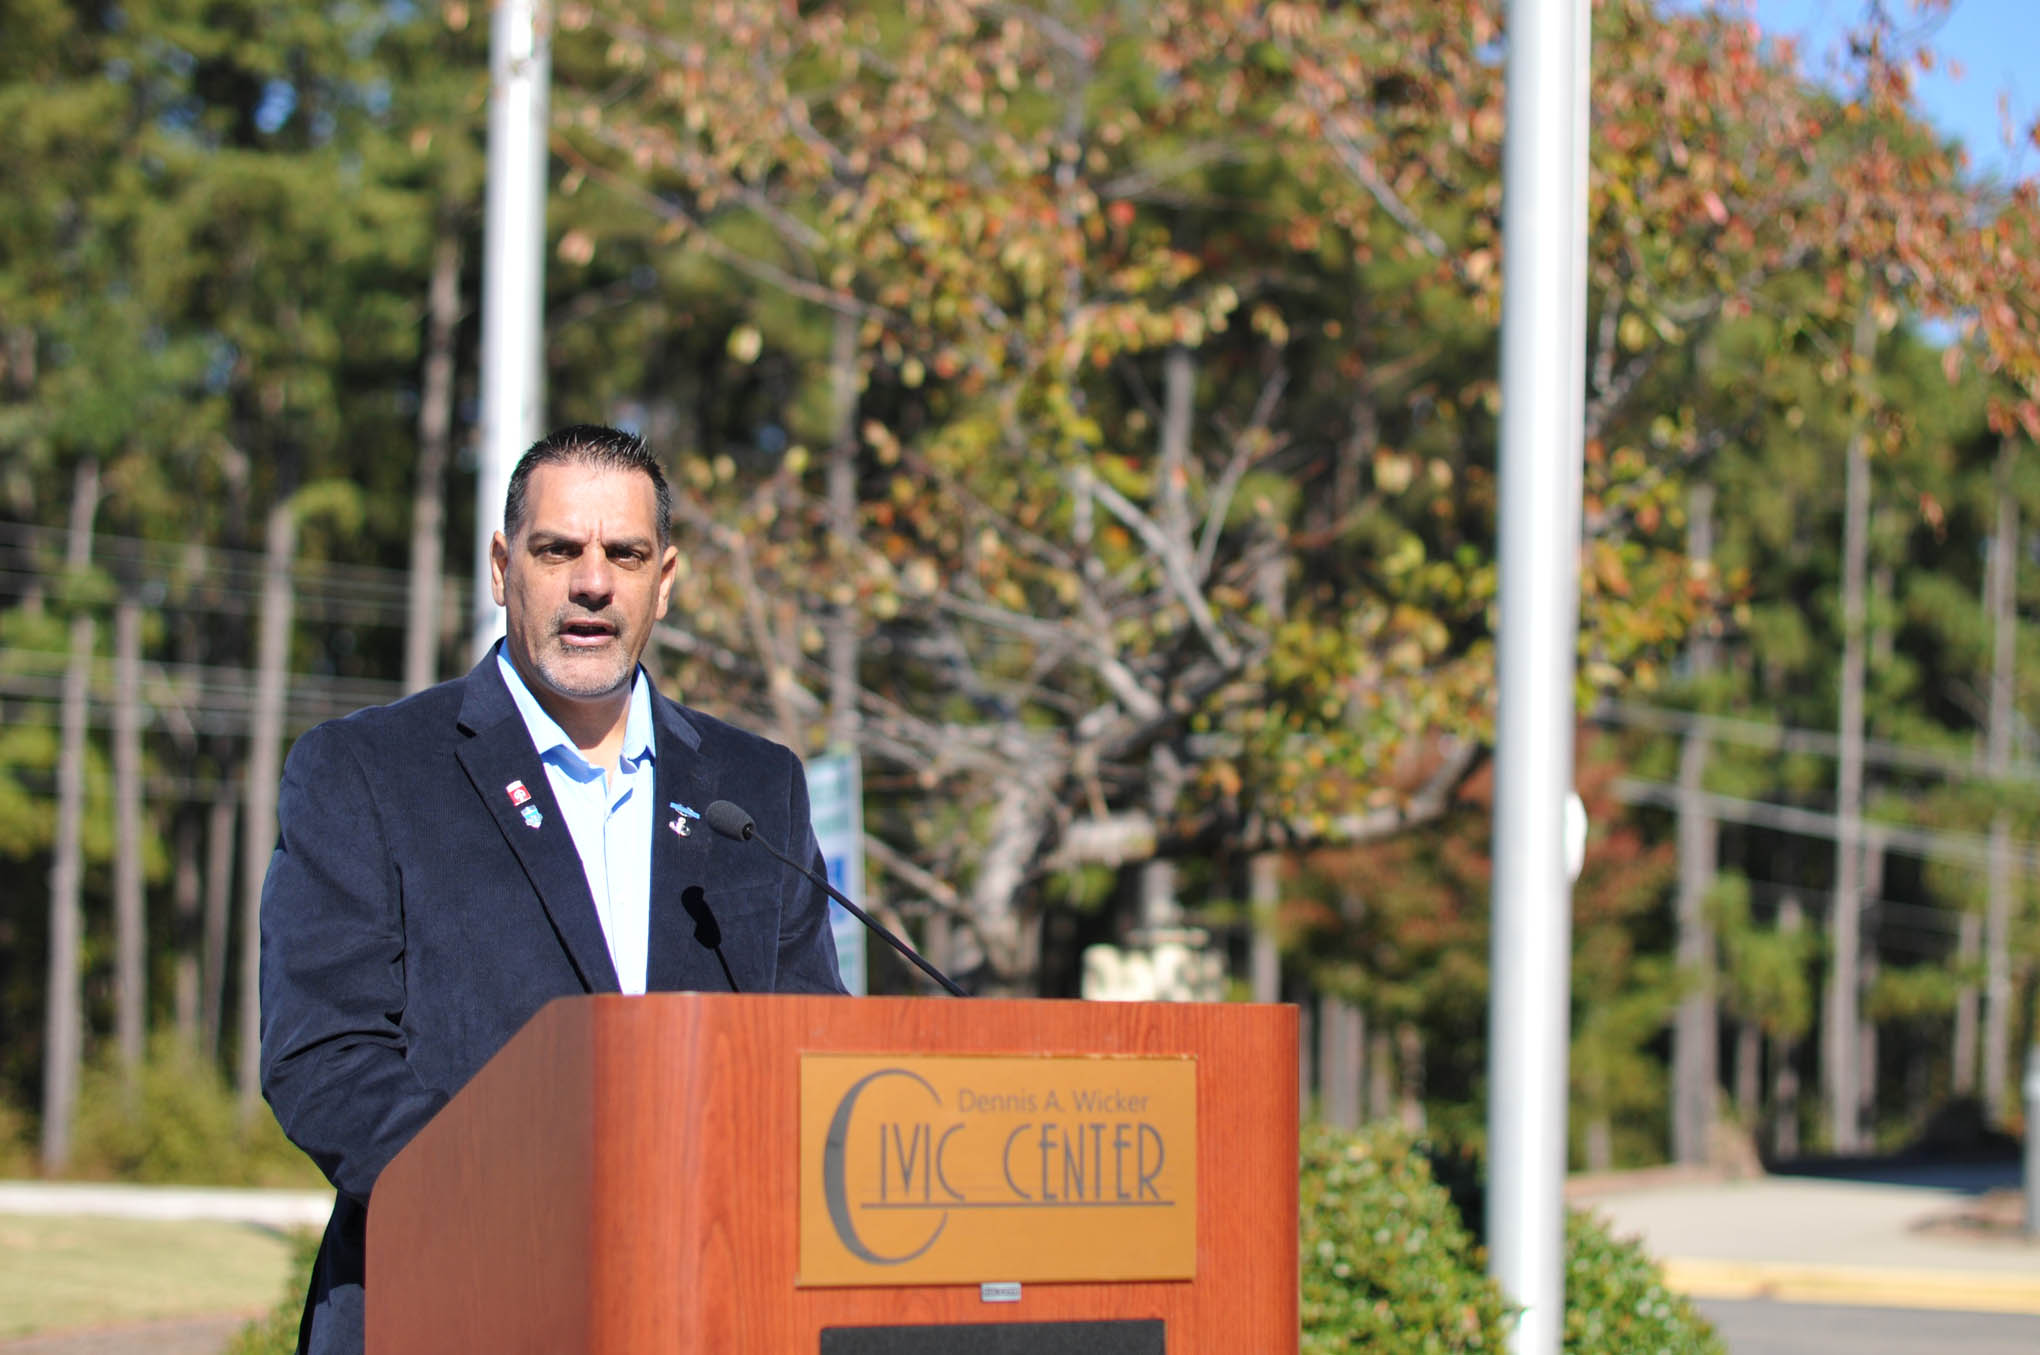 Click to enlarge,  Michael J. Morris, a current Central Carolina Community College student, was among the speakers at the Veterans Day observance on Thursday, Nov. 10, at the Dennis A. Wicker Civic Center.